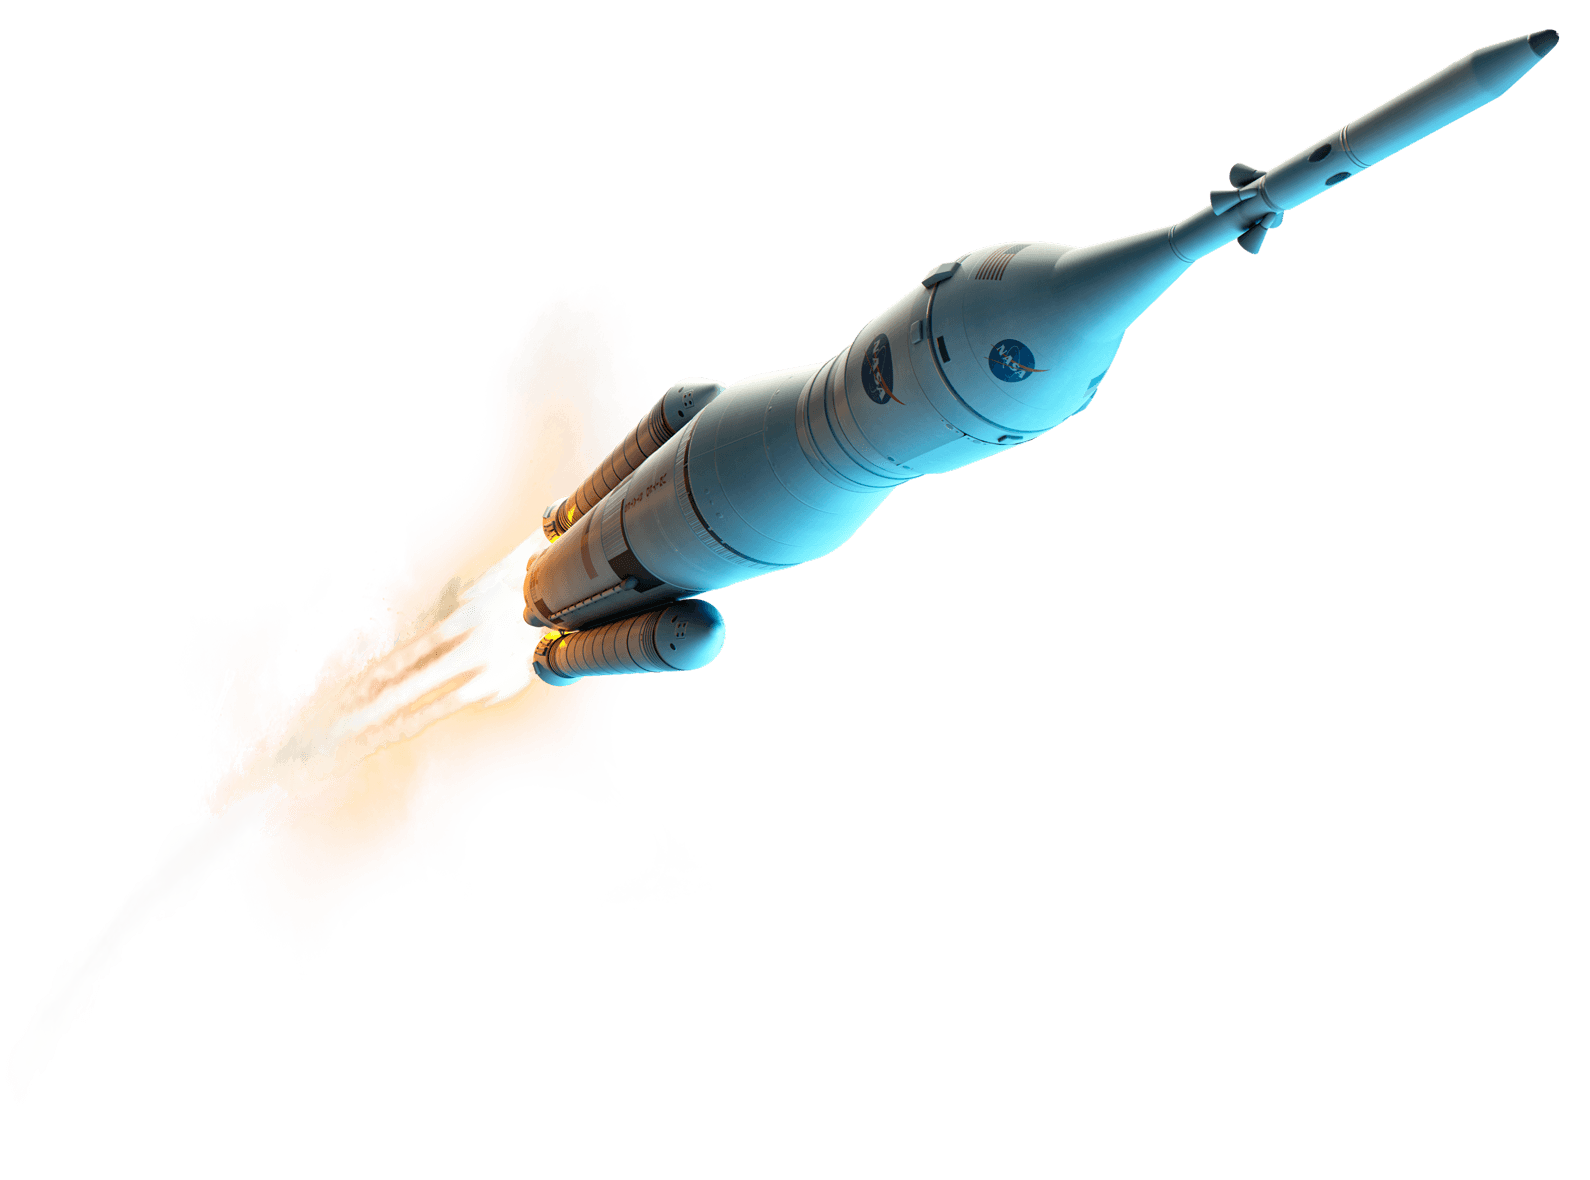 Home above and beyond. Flying clipart aerospace